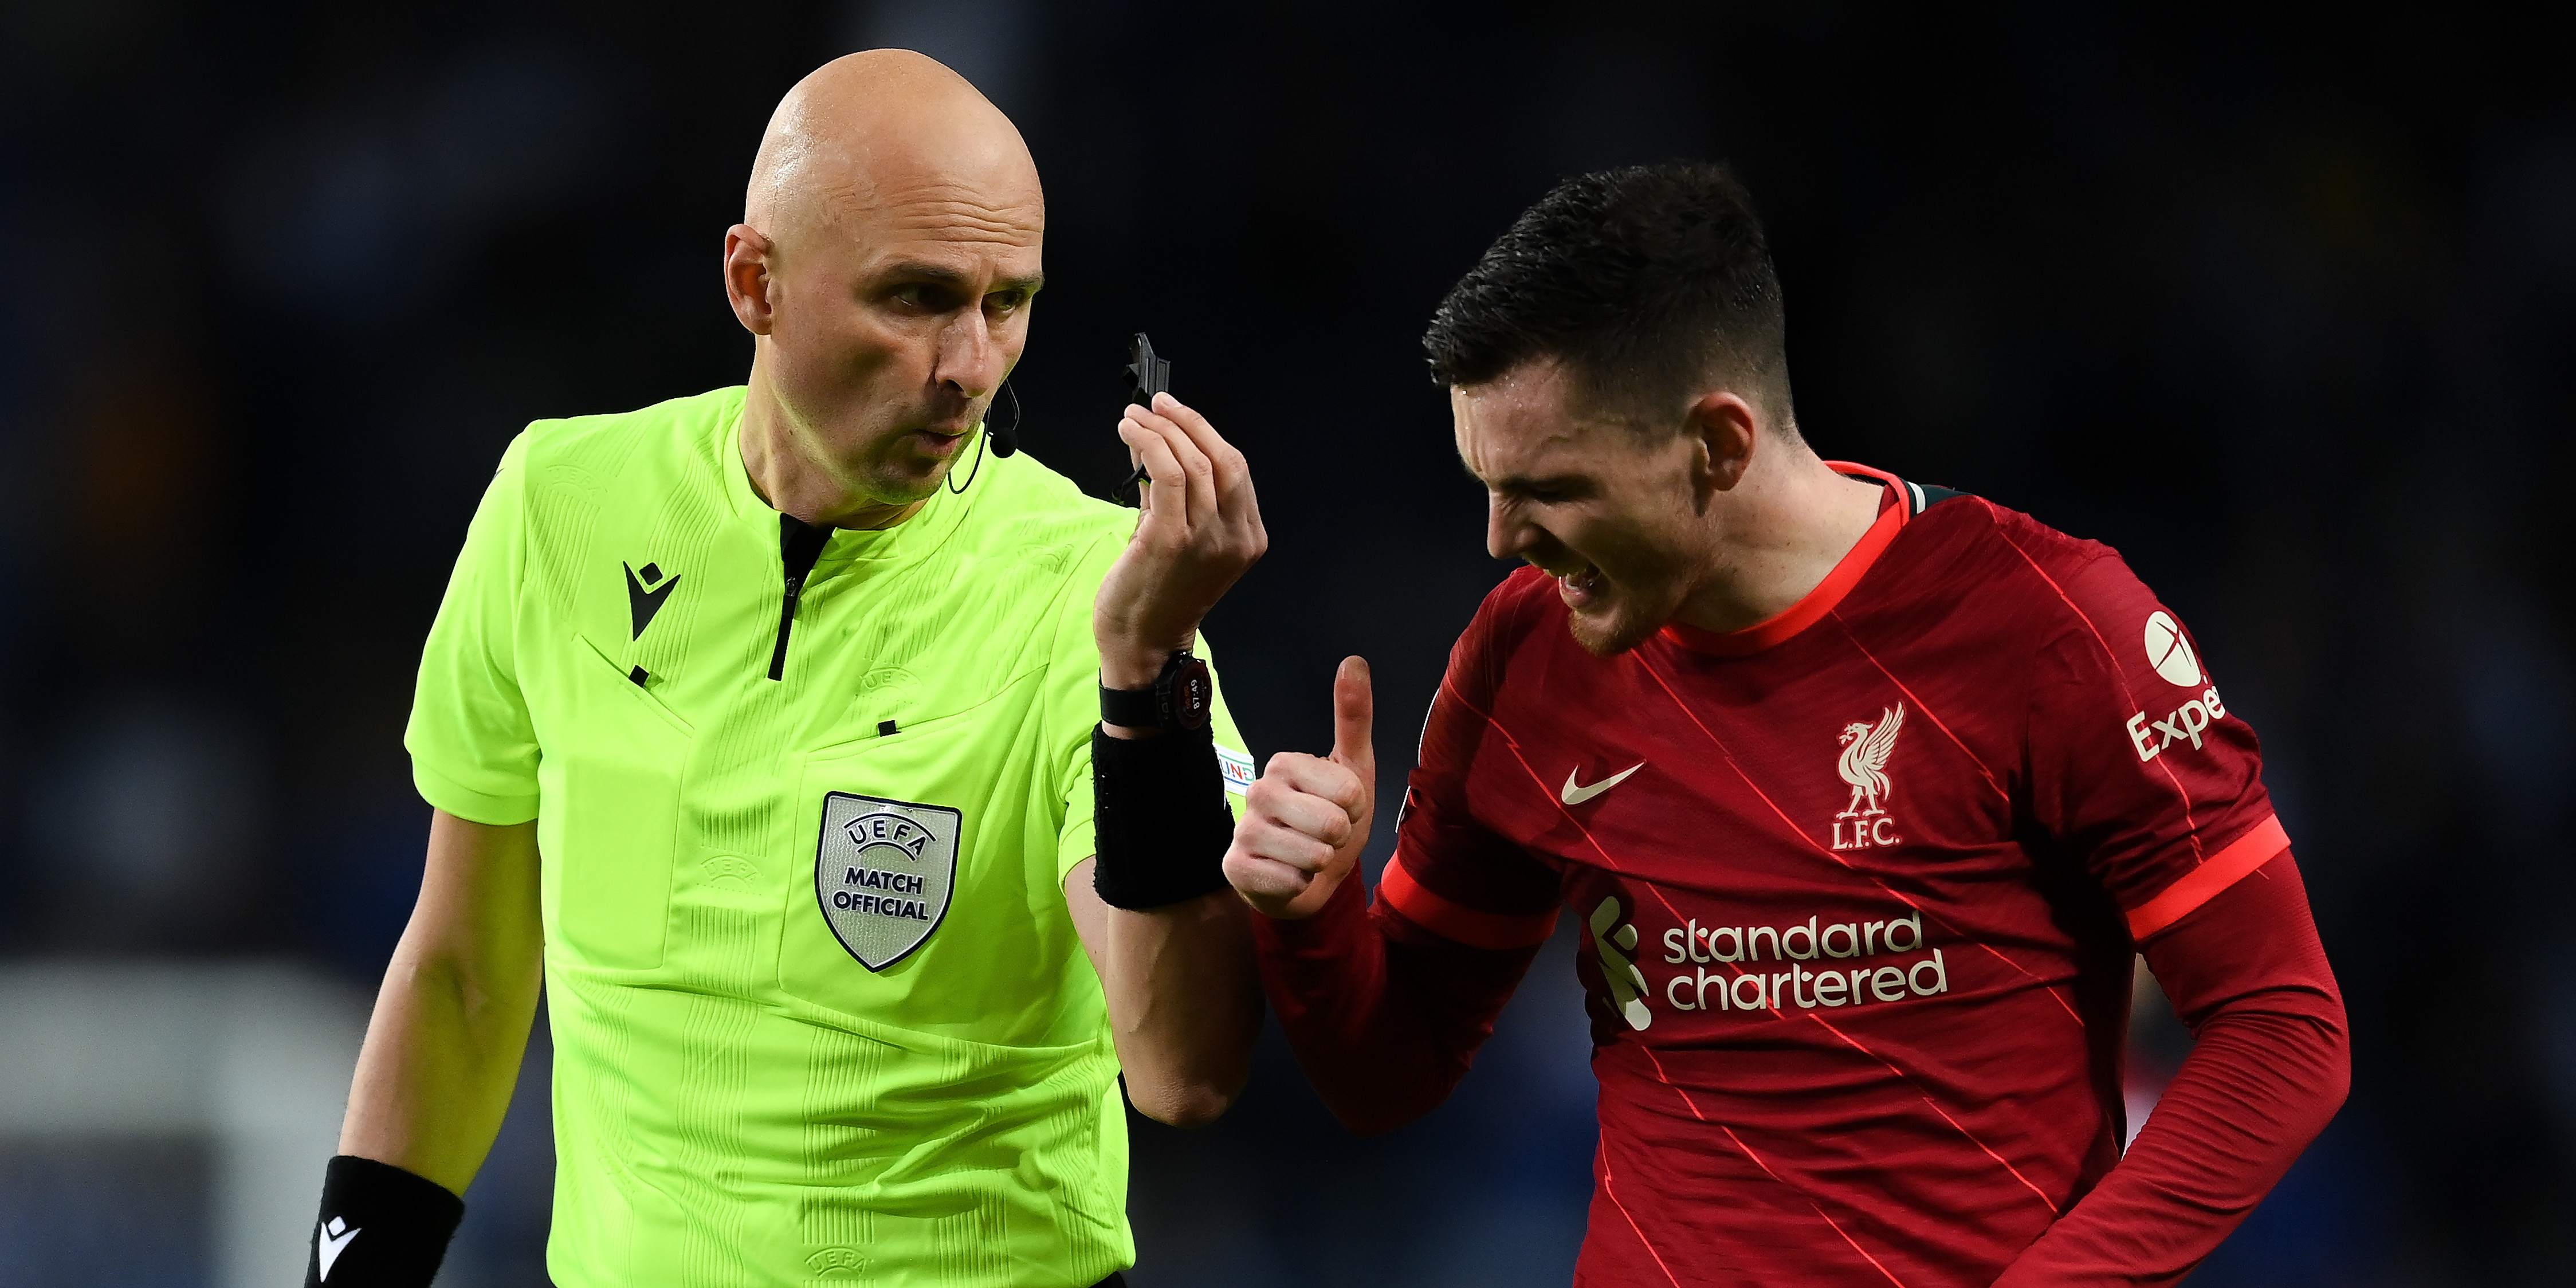 Liverpool supporters amongst the least critical fanbases when it comes to refereeing decisions